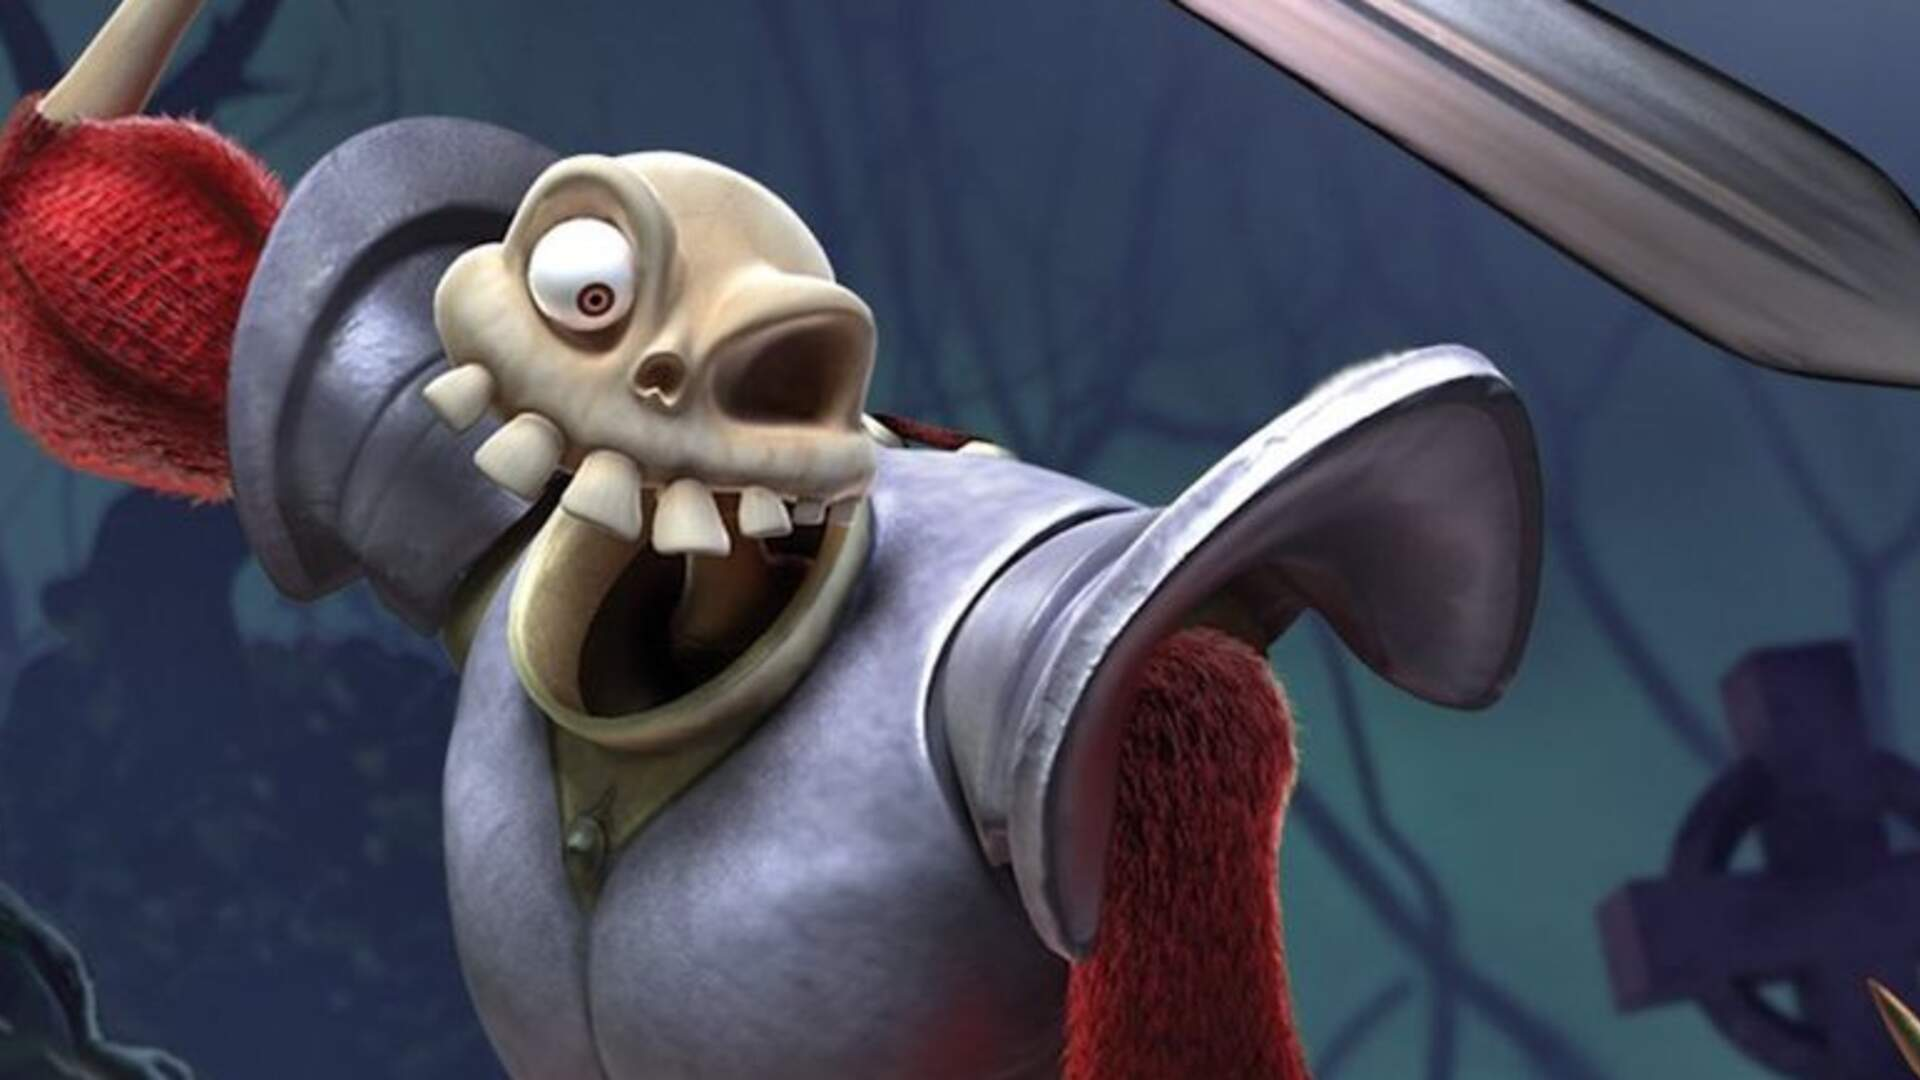 Sony's New State of Play This Week Looks at the PS4 MediEvil Remake and Debuts a New Game